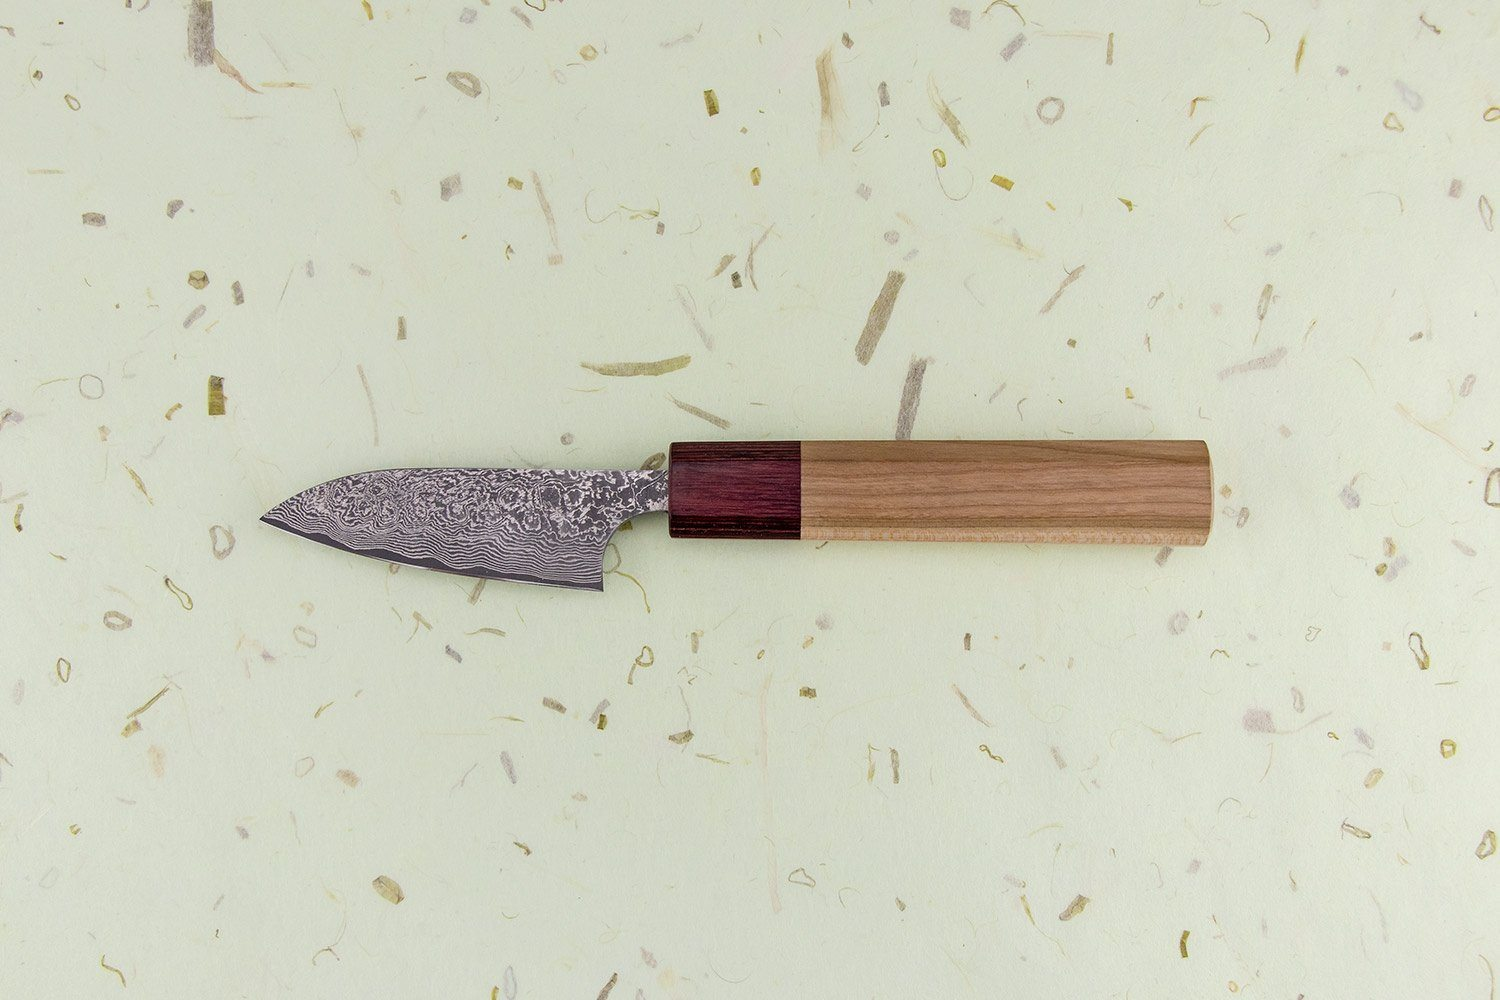 Masakage Kumo Petty 75mm